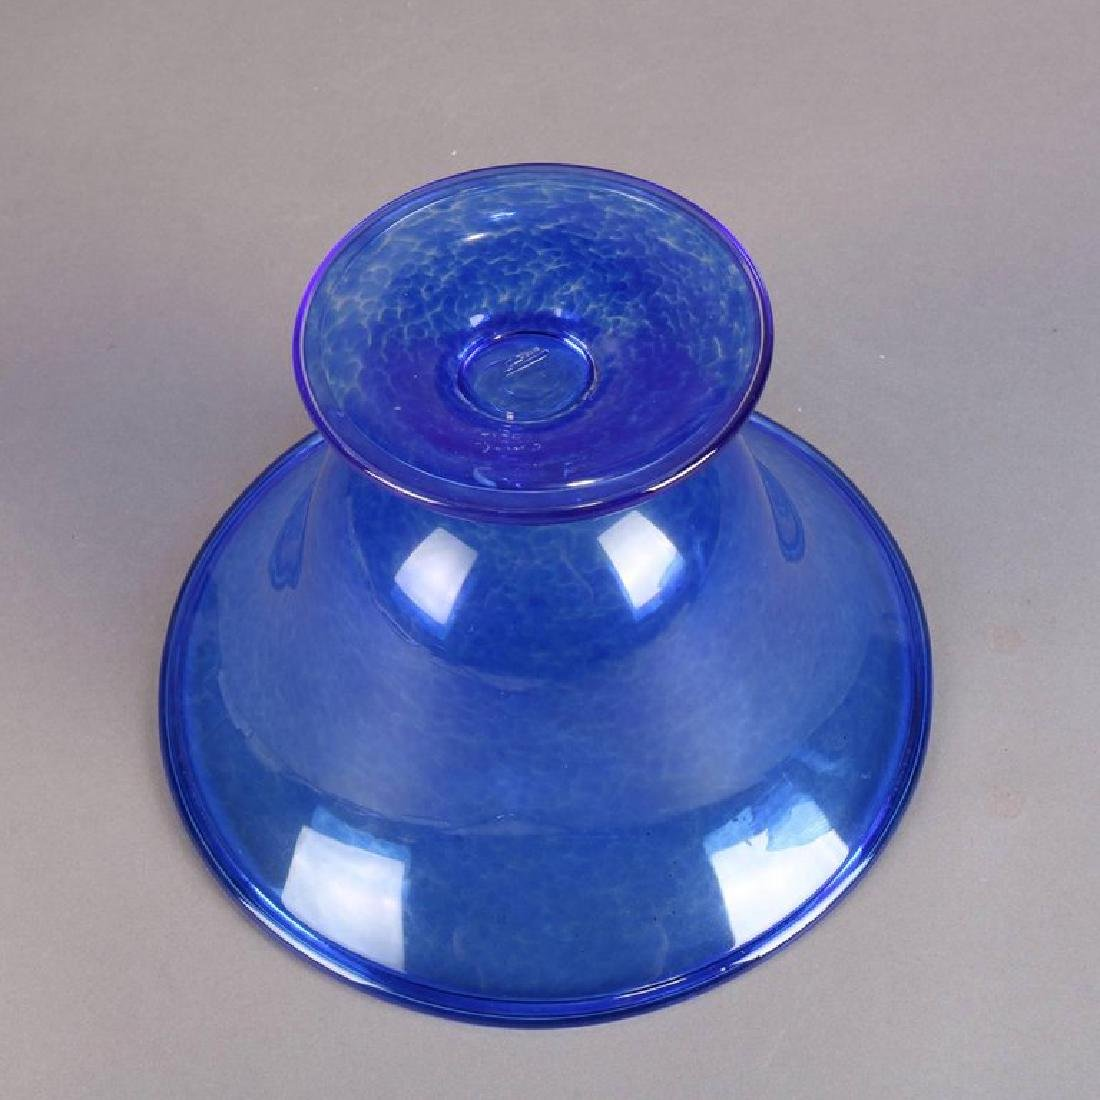 Steuben's Corning Museum of Glass Cobalt Blown Compote - 9